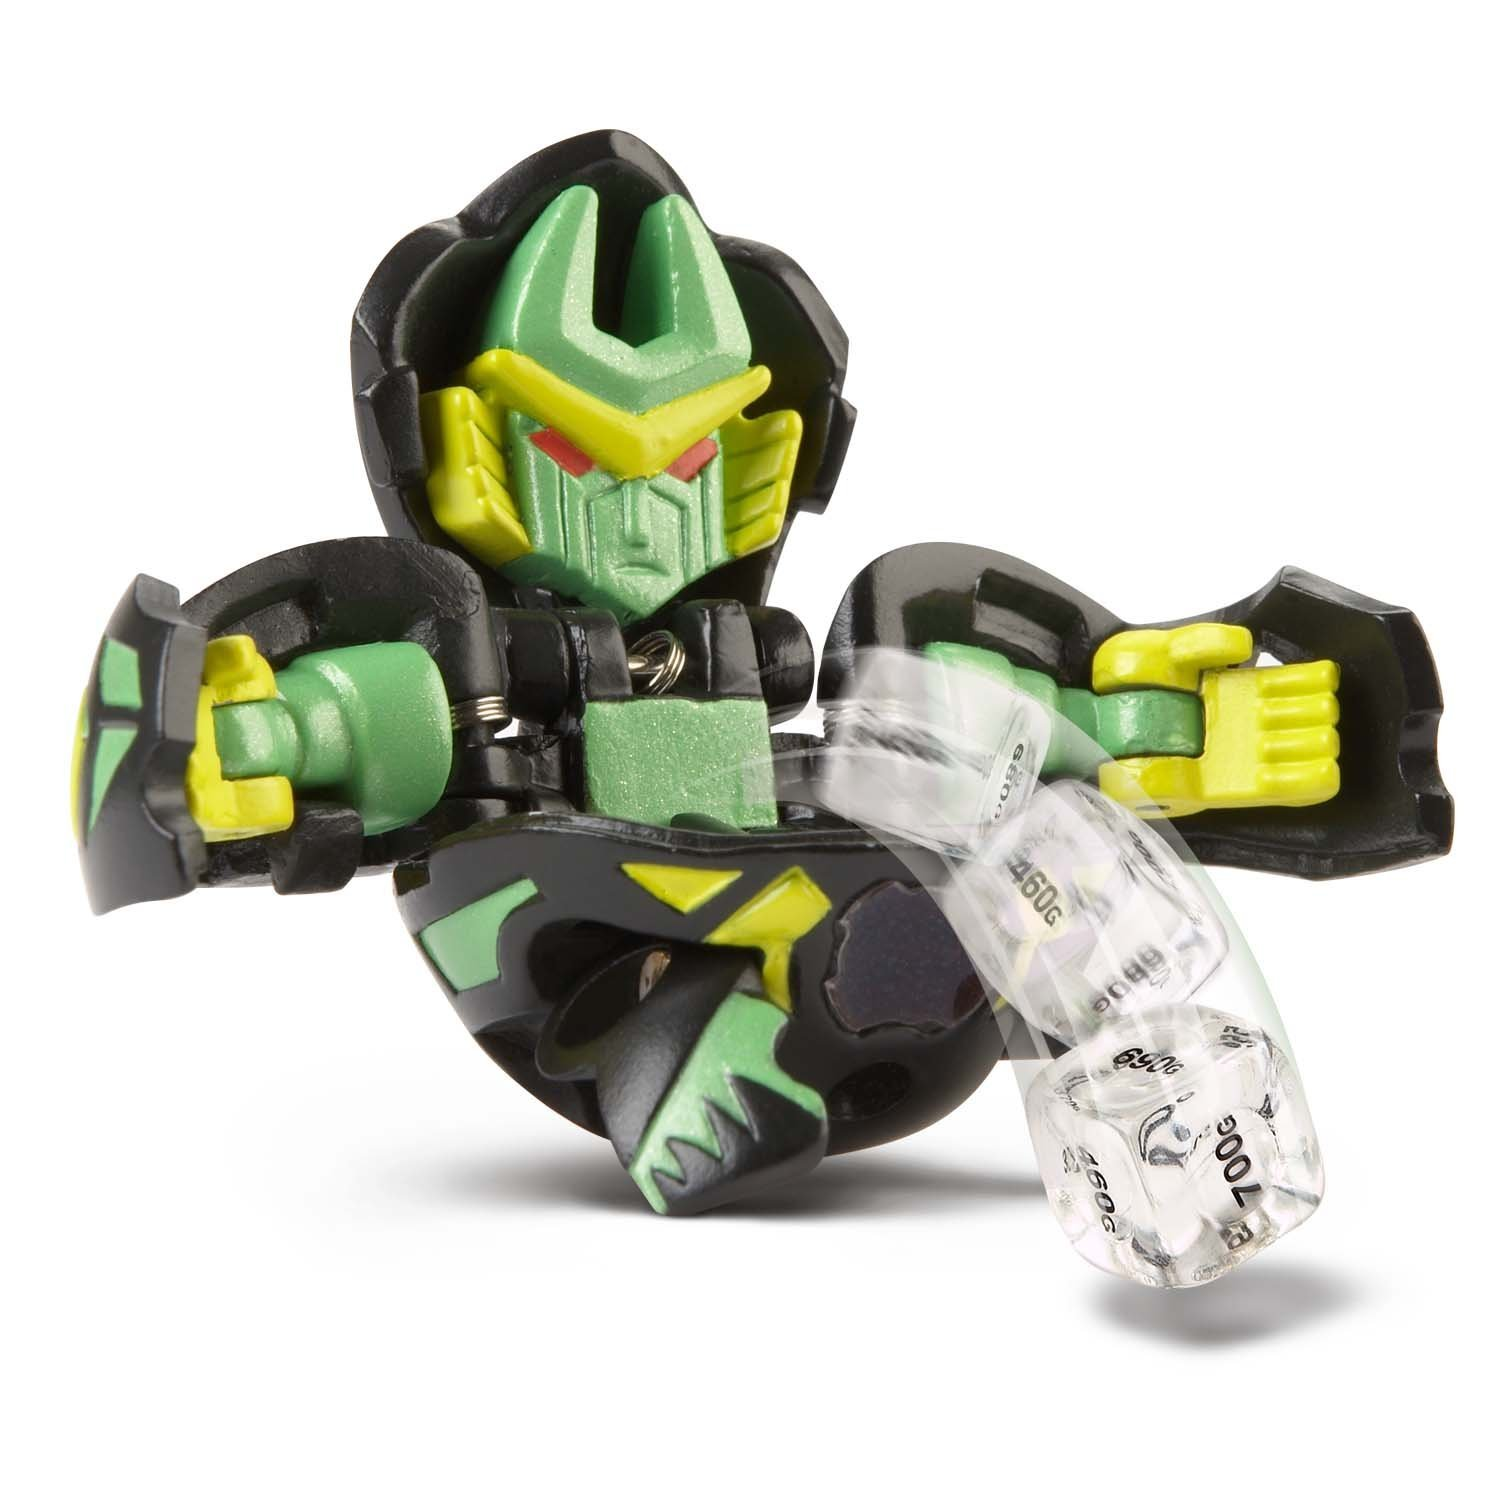 Bakugan Super Assault Bakuchance (Colors Vary Between Green, Red, Gray, Brown and Black), Take your battle brawling to the next level with Bakugan.., By Spin Master